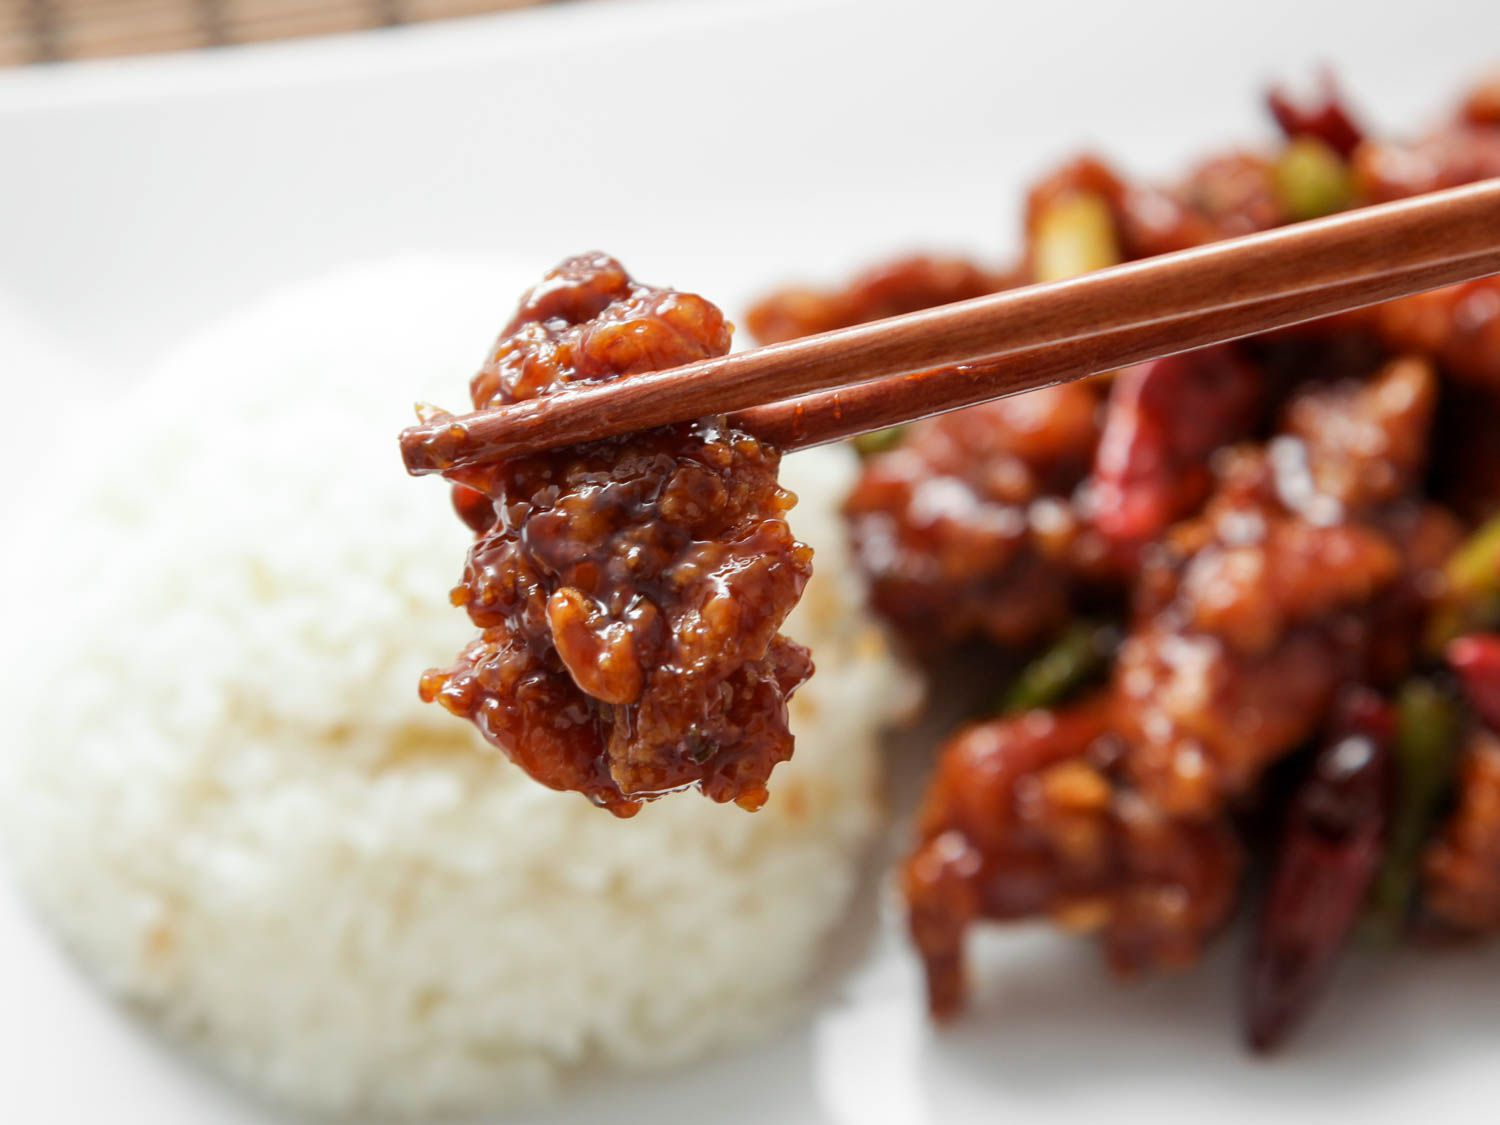 Using chopsticks to hold a piece of General Tso's chicken over a bed of rice, with more chicken in the background.